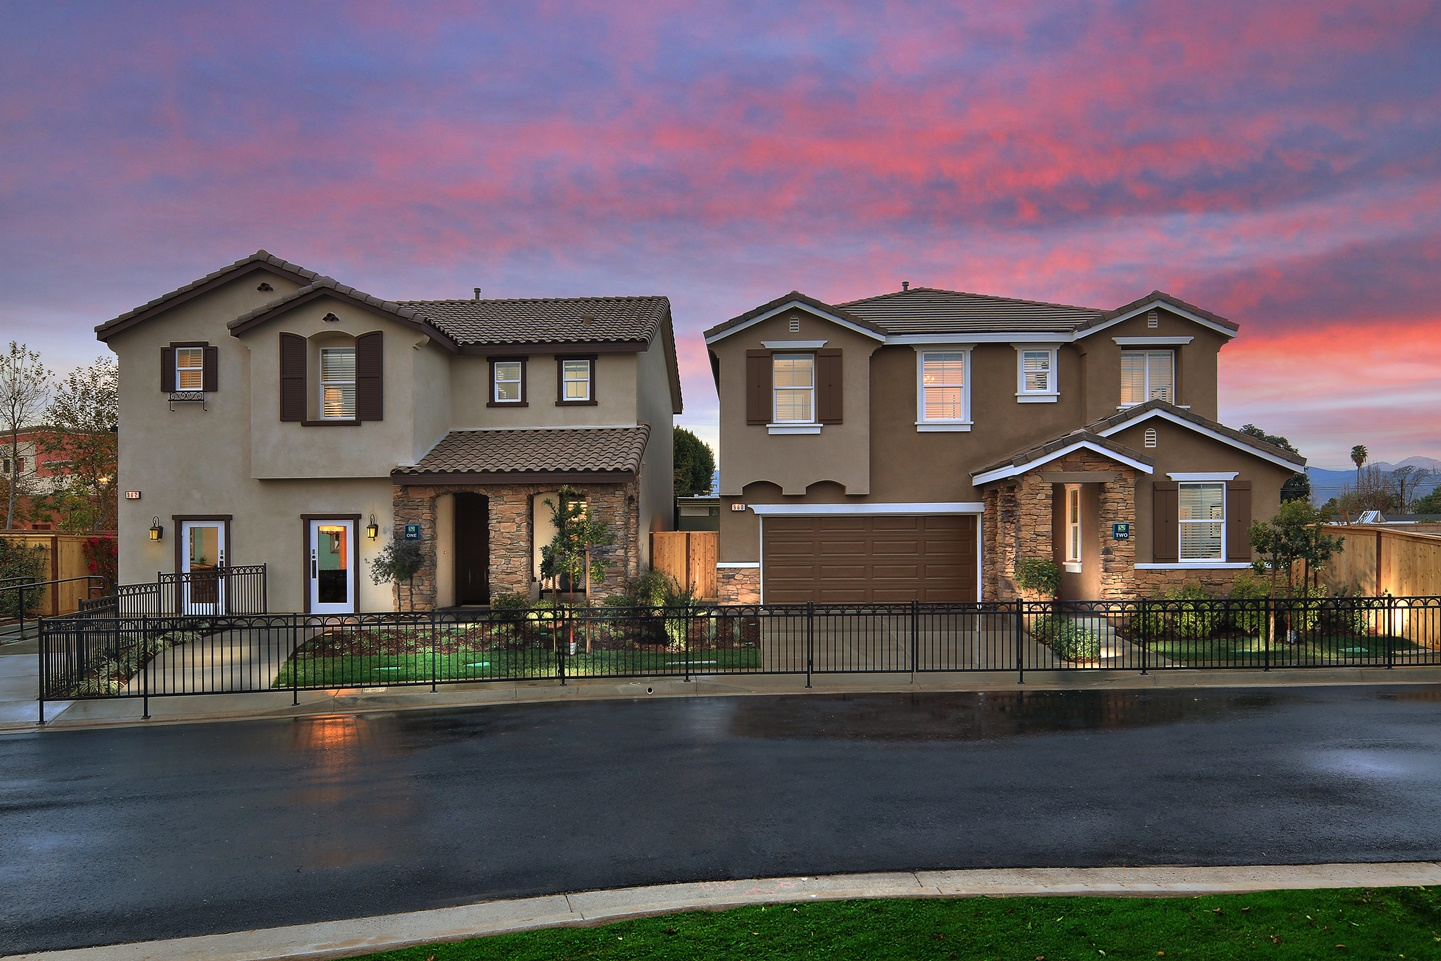 Brandywine Sells All 19 Homes at West Covina's New Gated Community